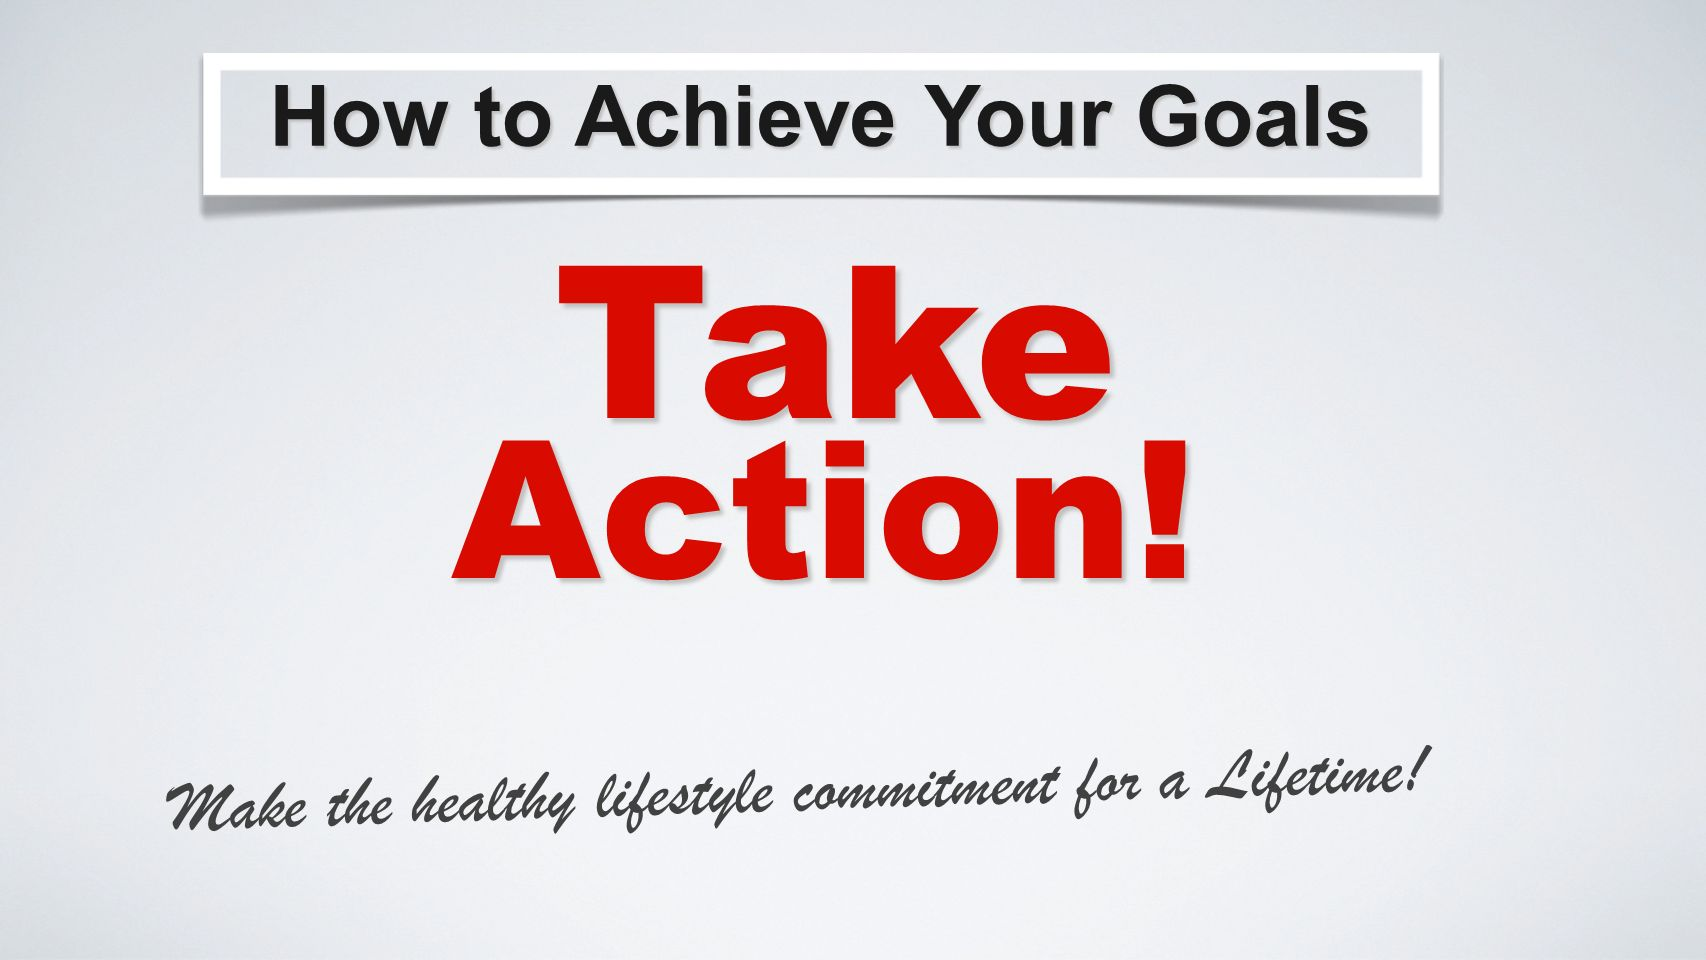 How to Achieve Your Goals Take Make the healthy lifestyle commitment for a Lifetime! Action!